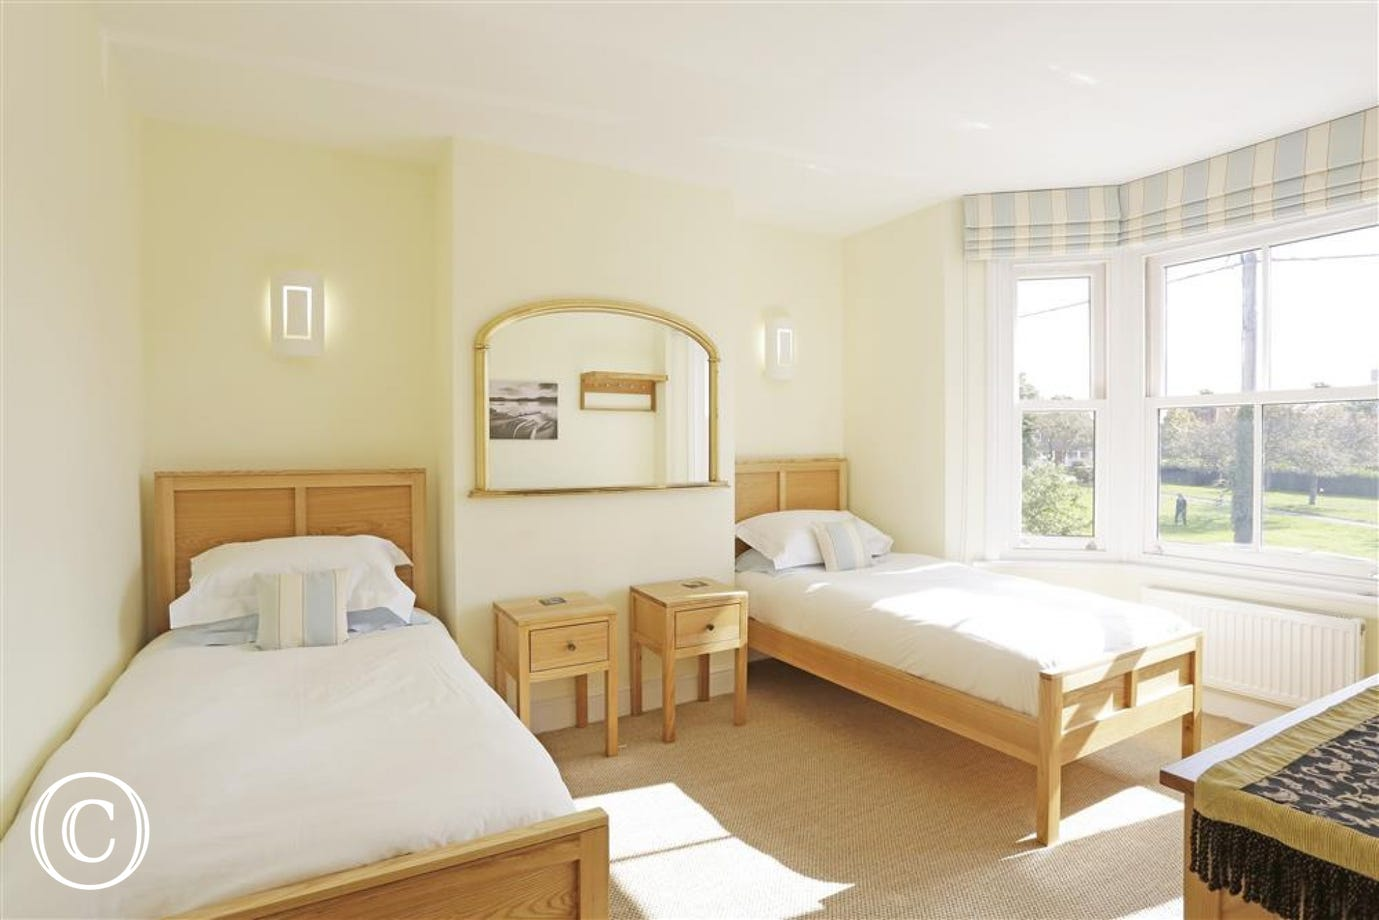 This twin bedded room is situated at the front of the property and has a good view of the church green and the light house in the distance.